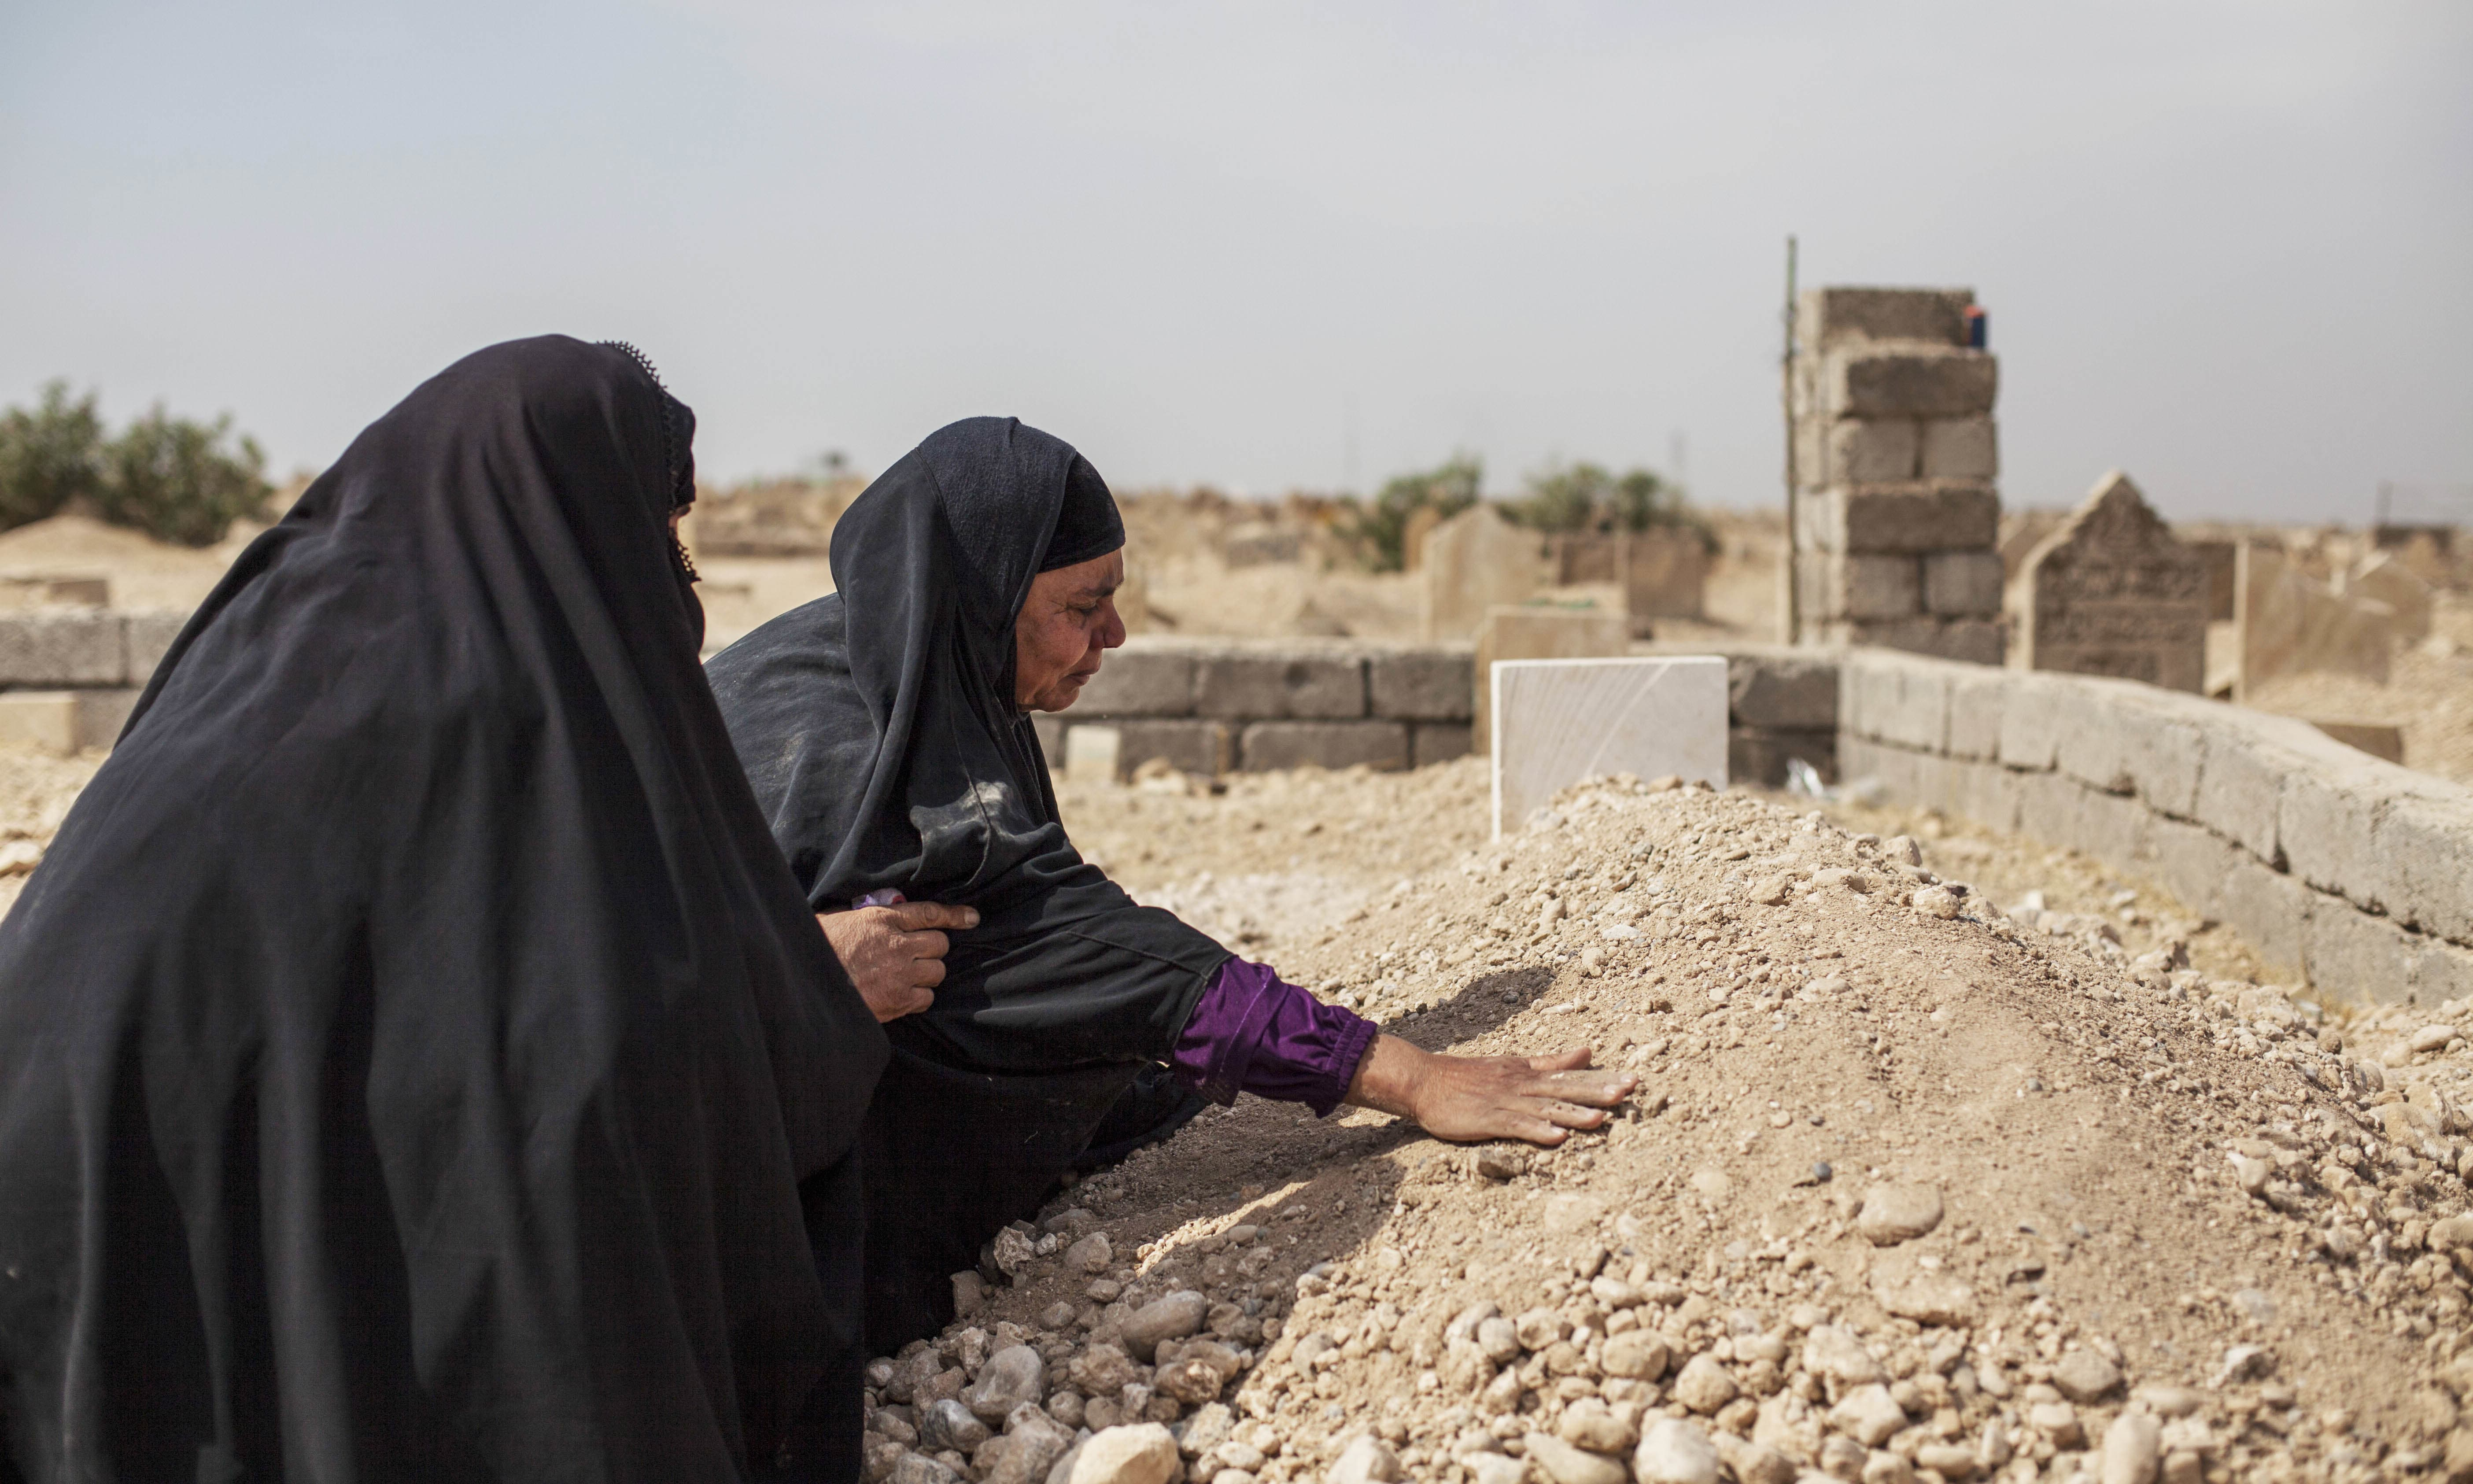 Fatima Ahmed Aswad cries as she touches the grave of her 15-year-old daughter Sana in Mosul. — AP